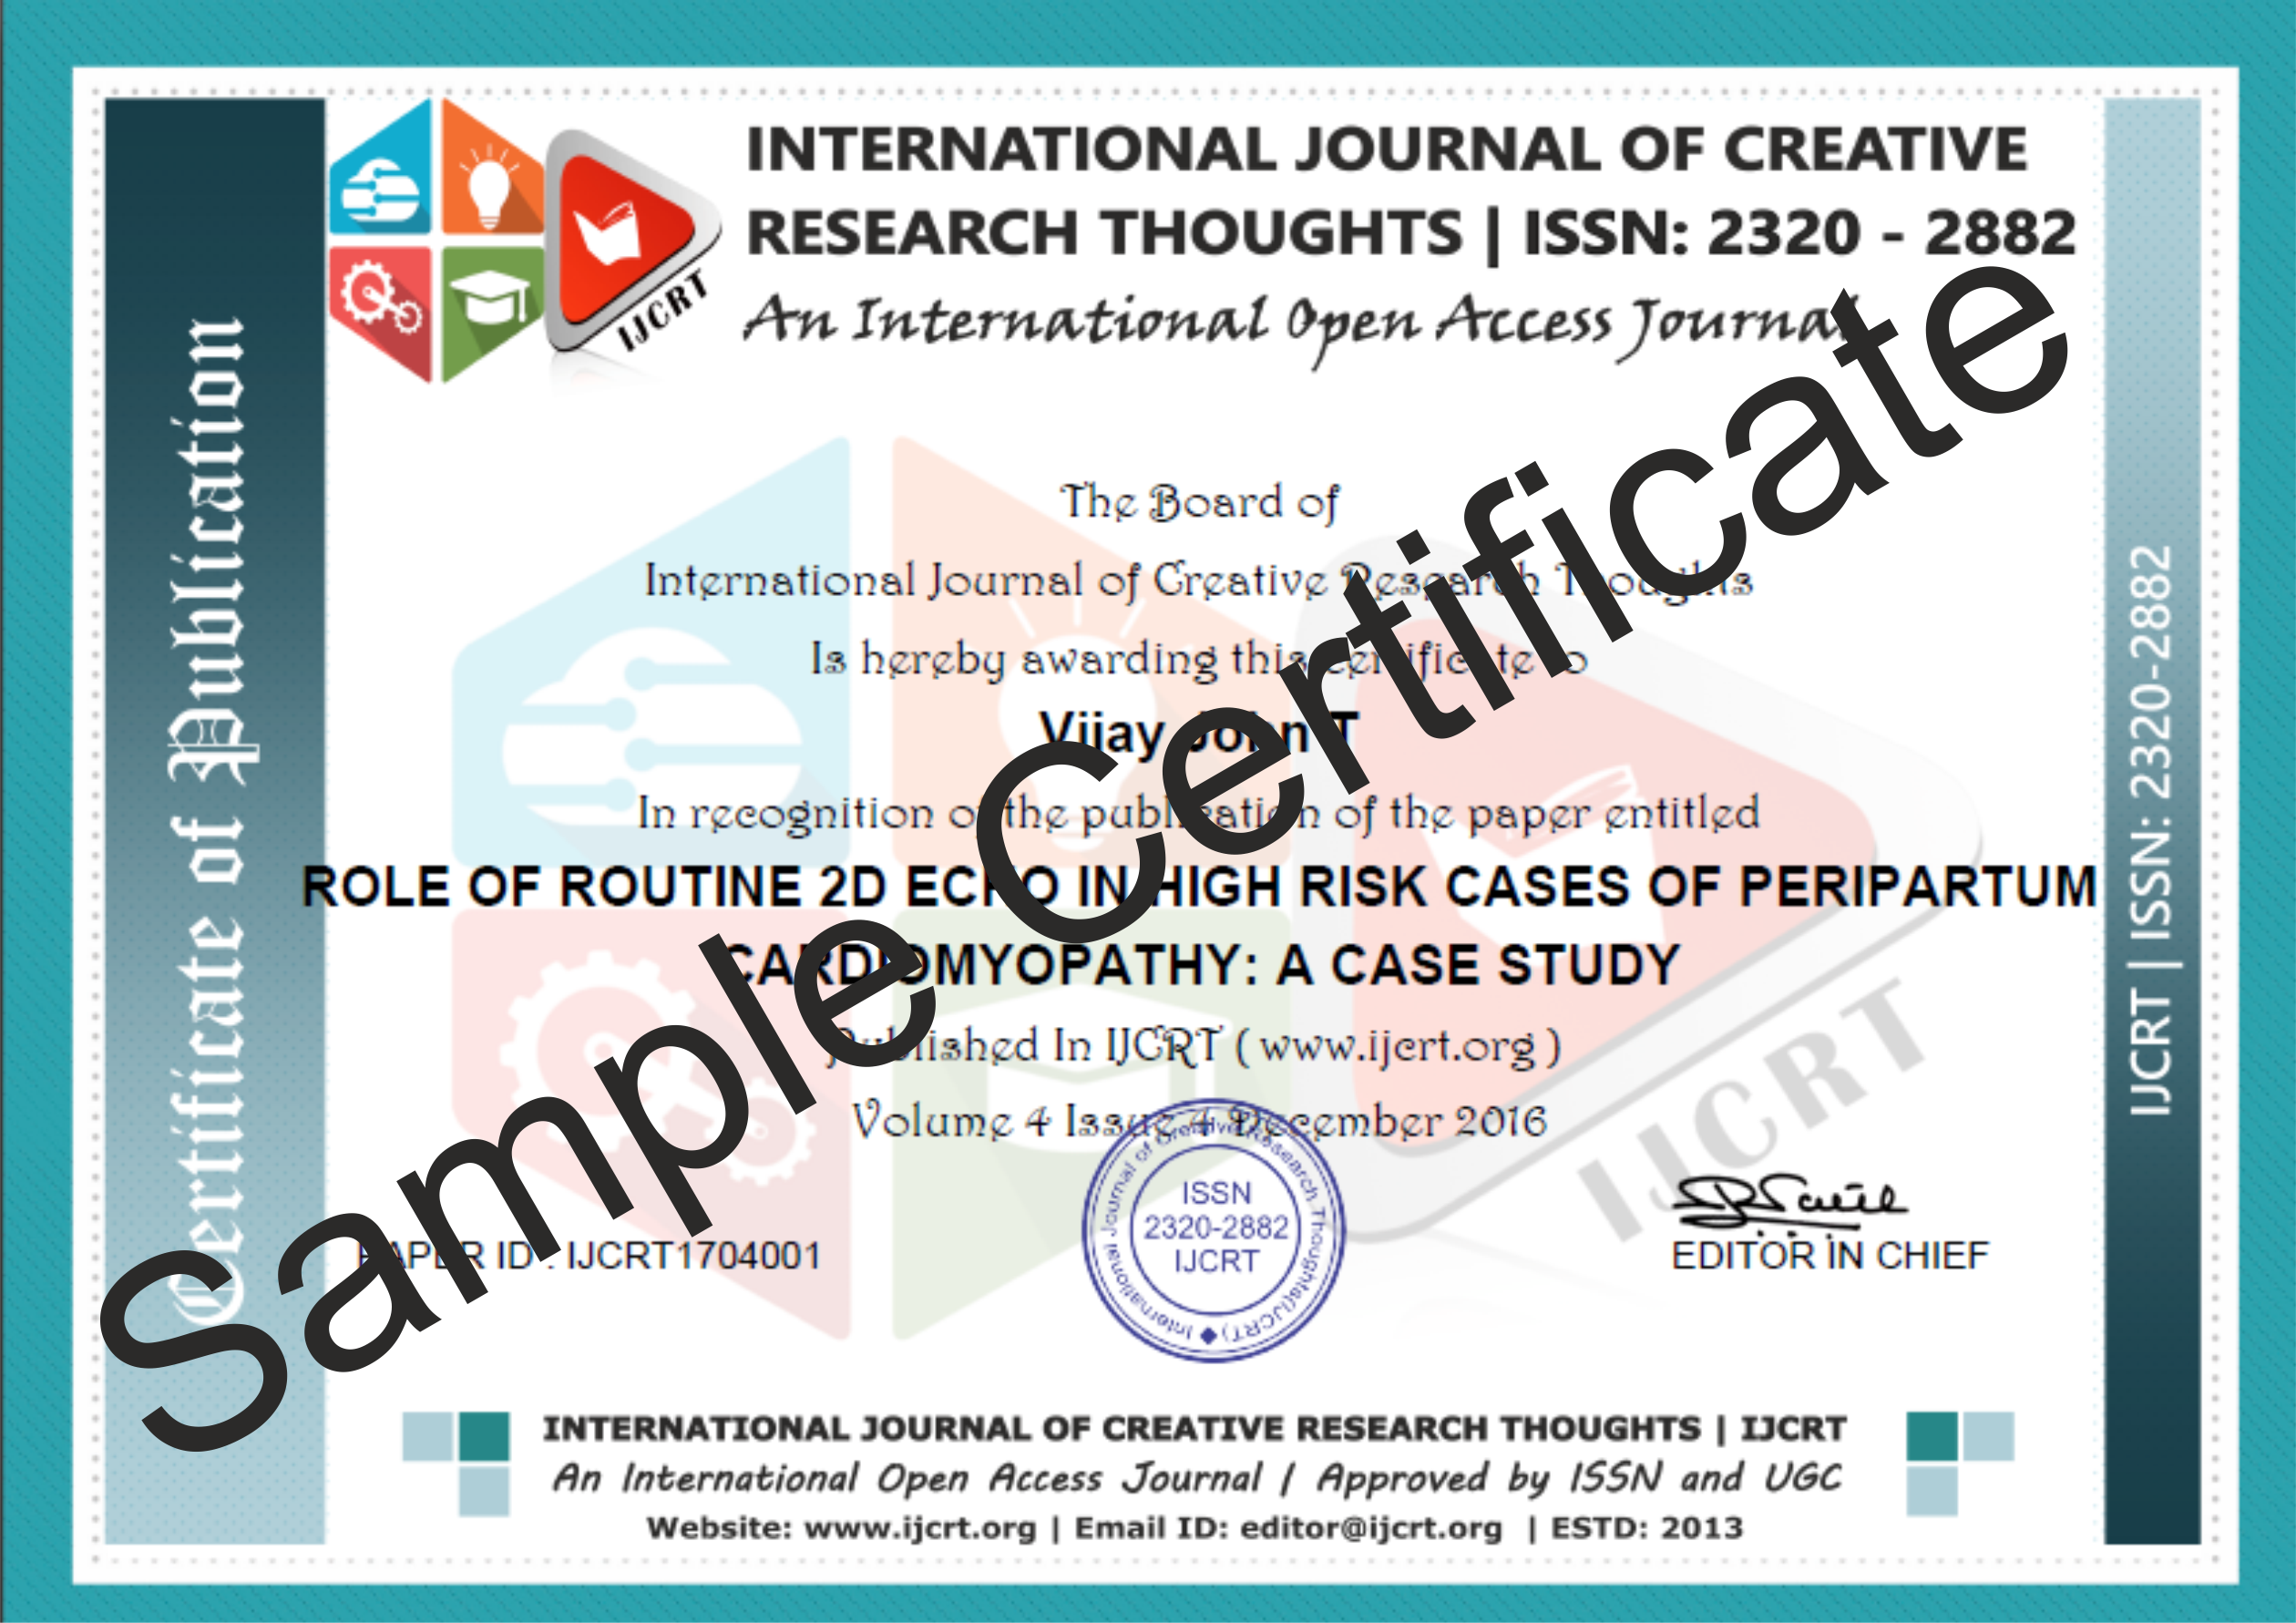 006 Free Online Research Paper Publish Sample Certificate Awful Full